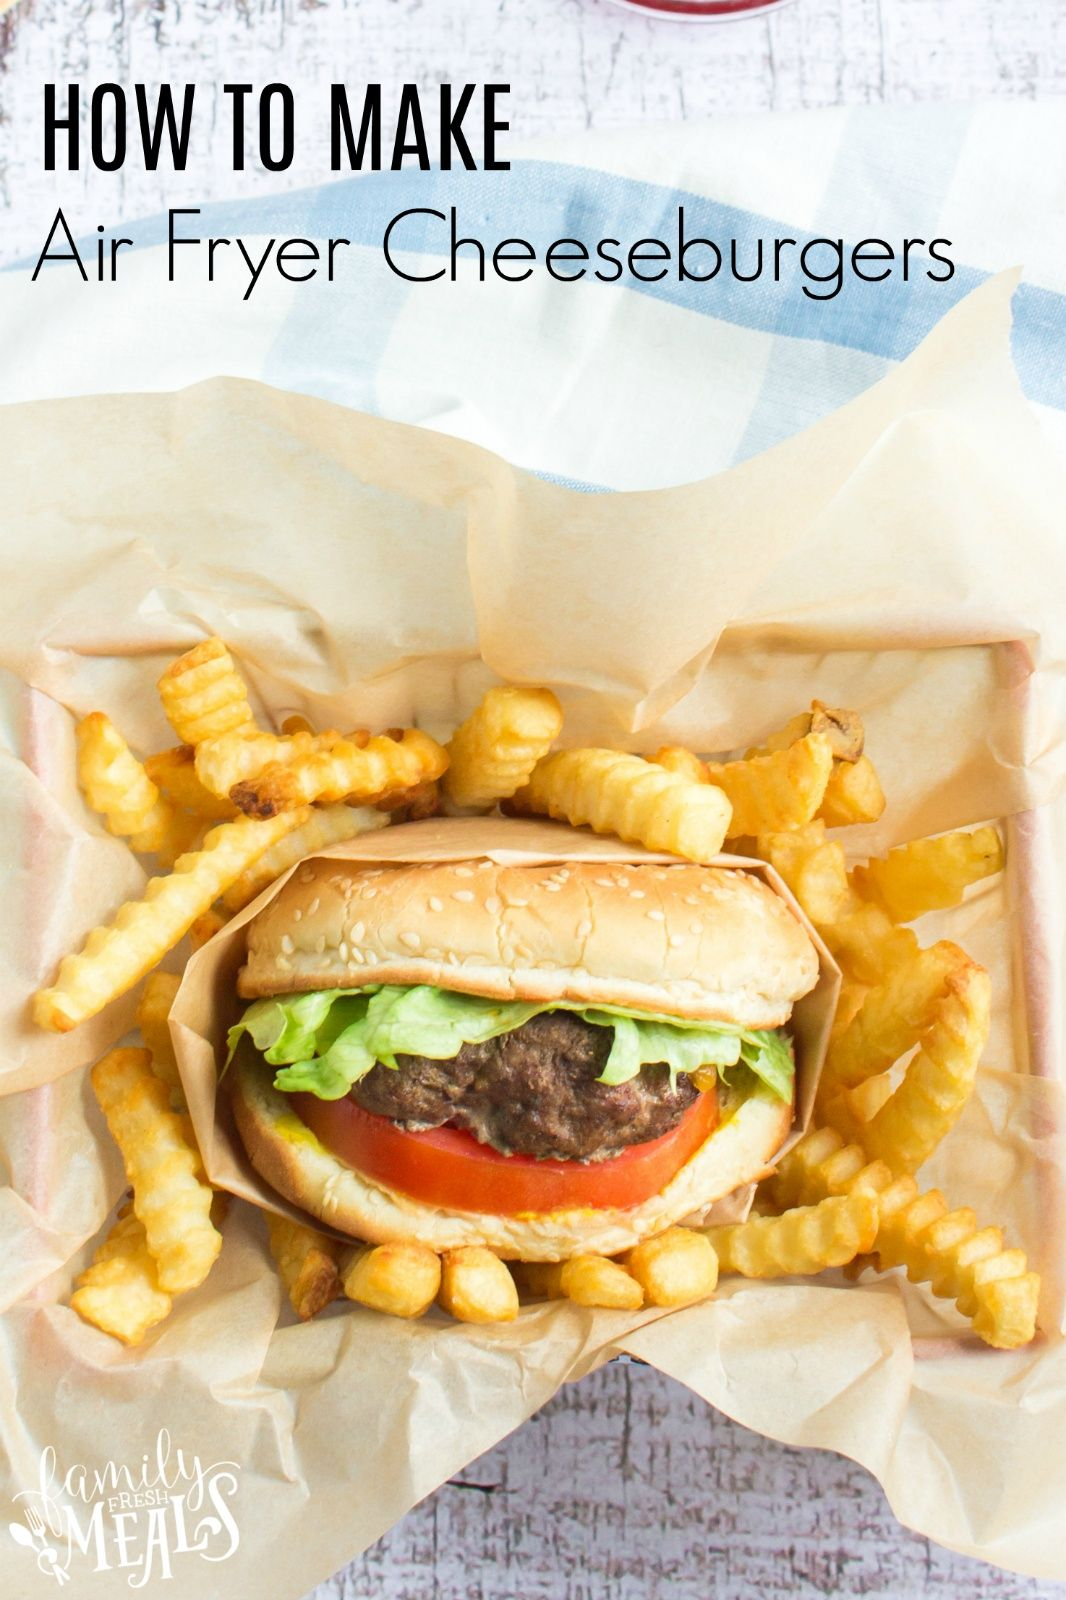 Air Fryer Cheeseburgers in 2020 Air fryer recipes